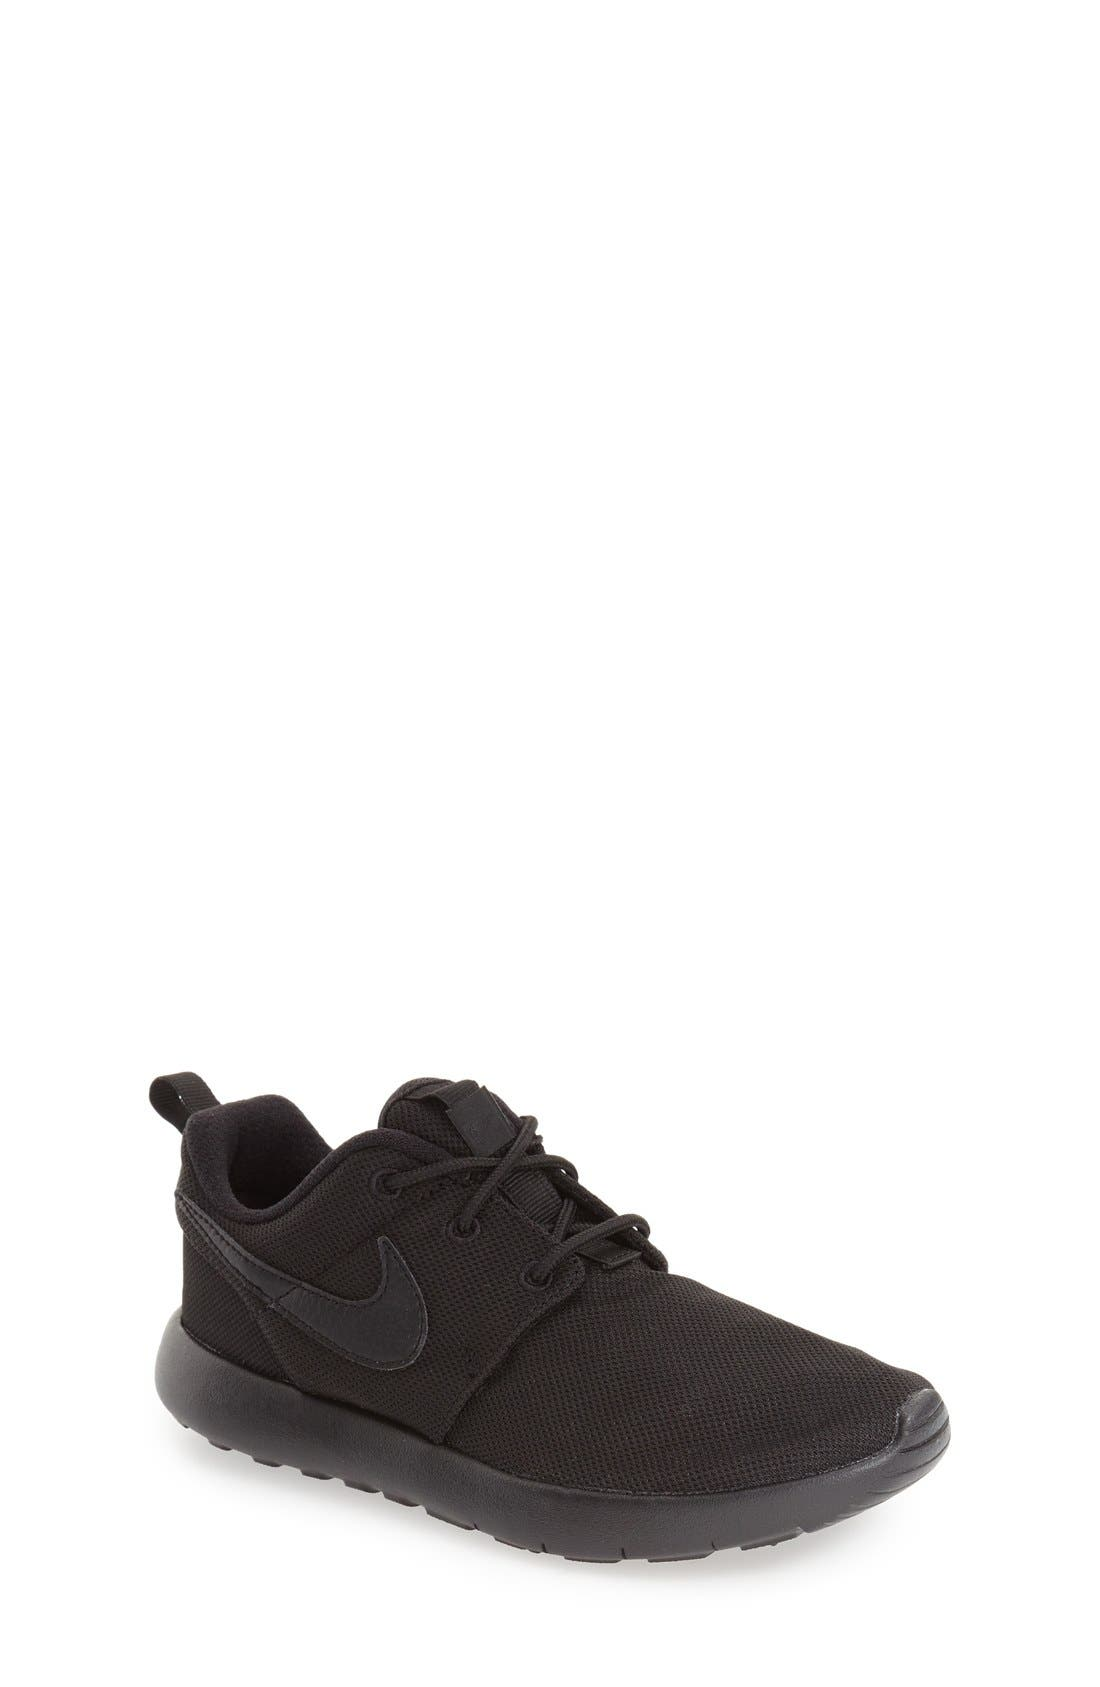 Roshe Run Sneaker,                             Main thumbnail 2, color,